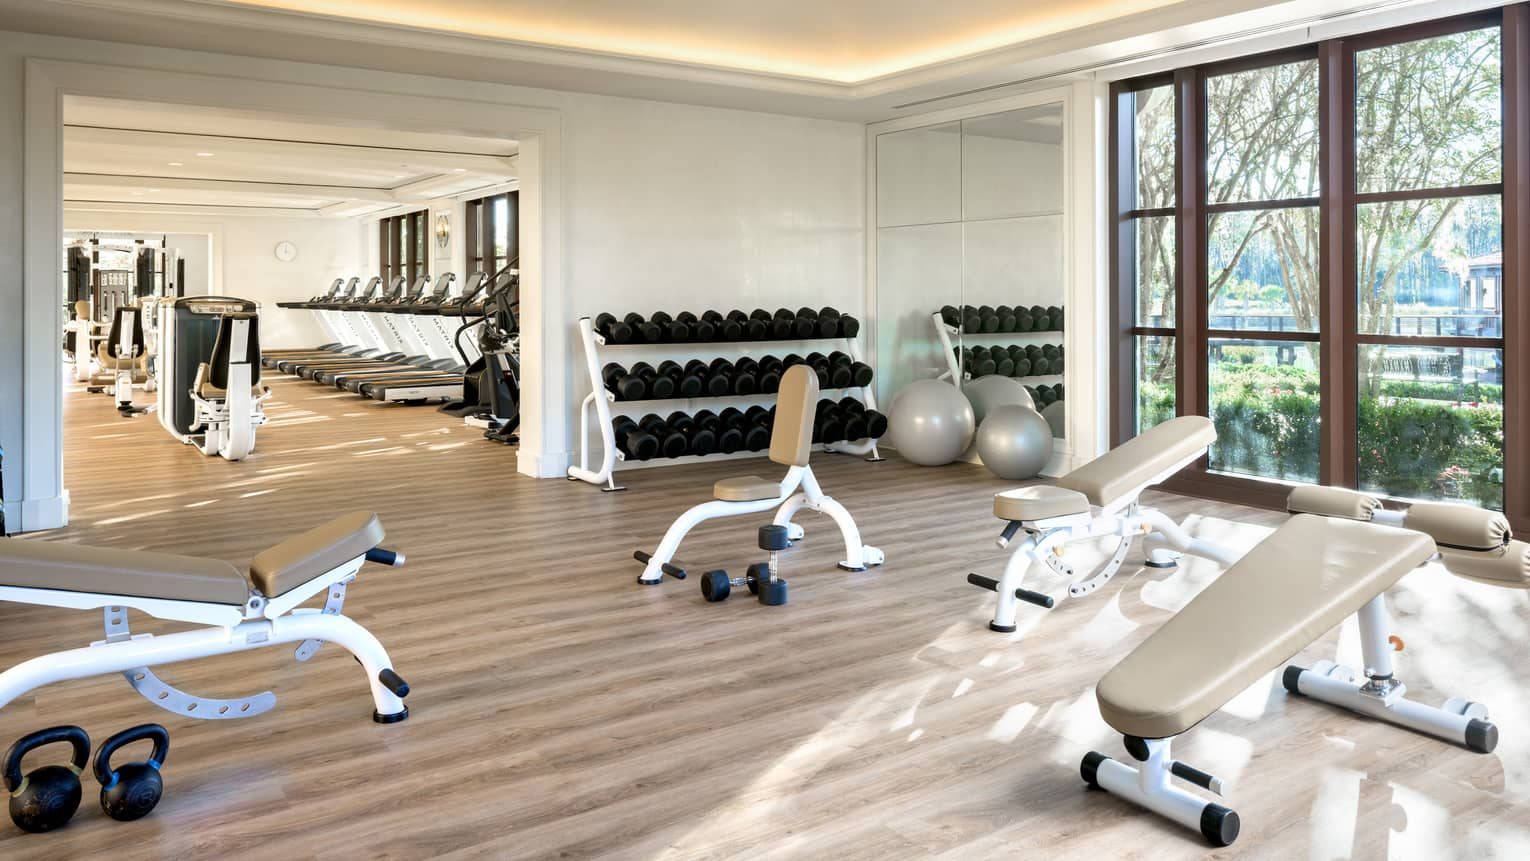 Bright Fitness Centre with leather benches, hand weights, large windows